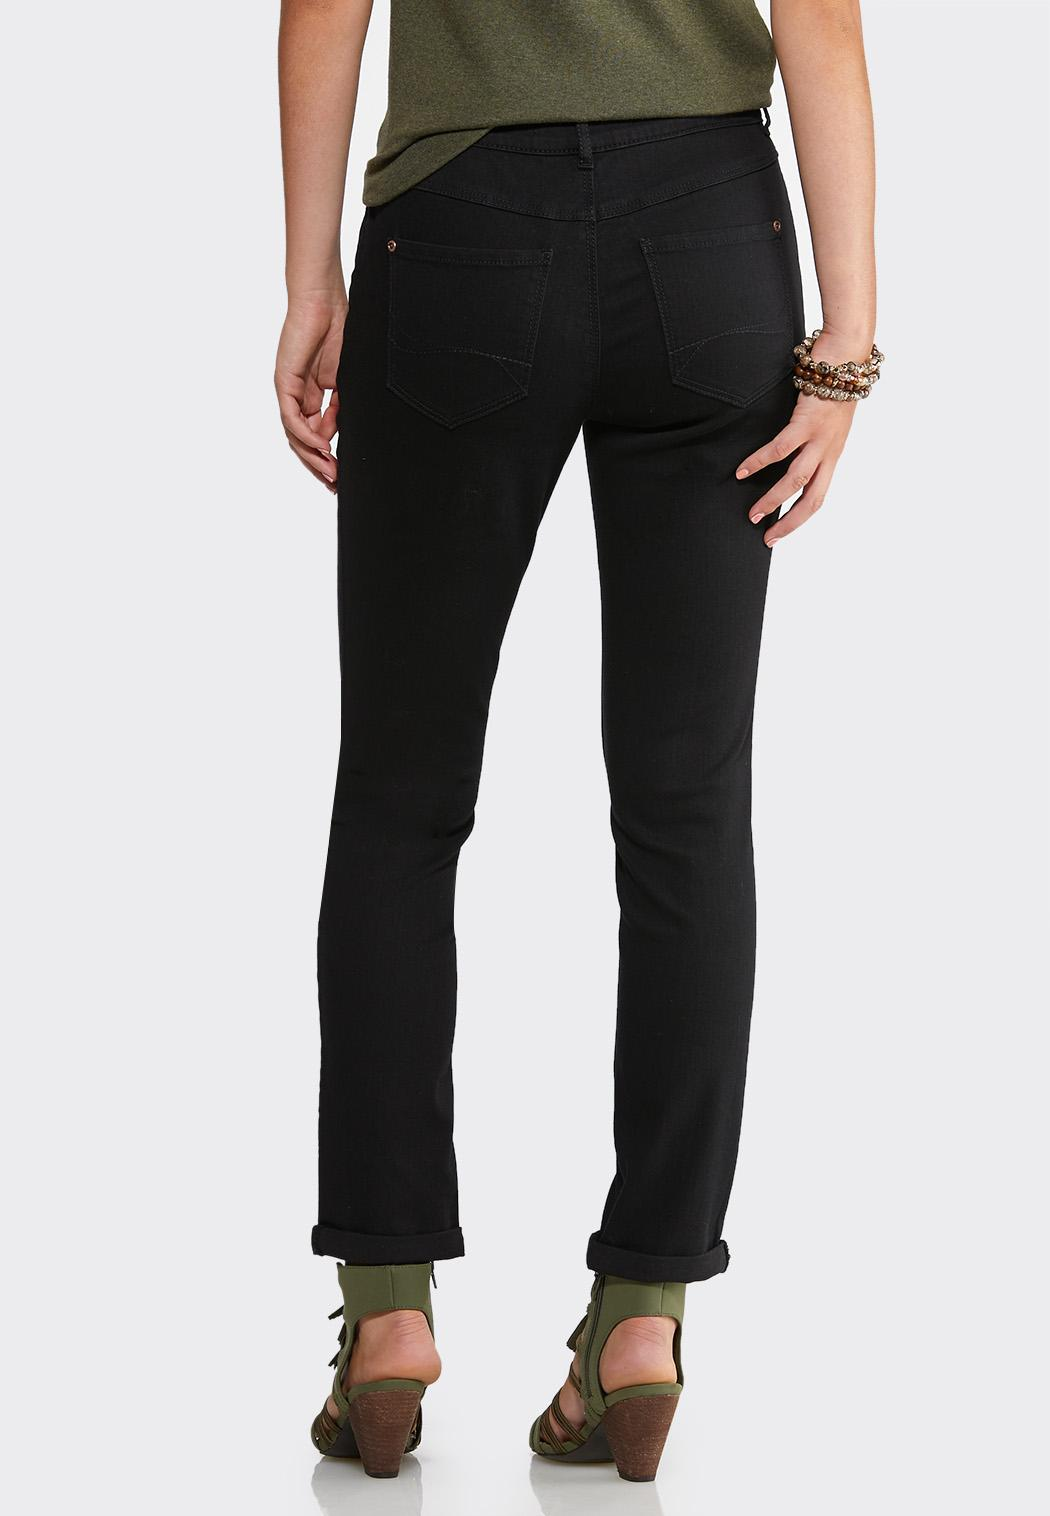 Black Skinny Ankle Jeans (Item #43949294)